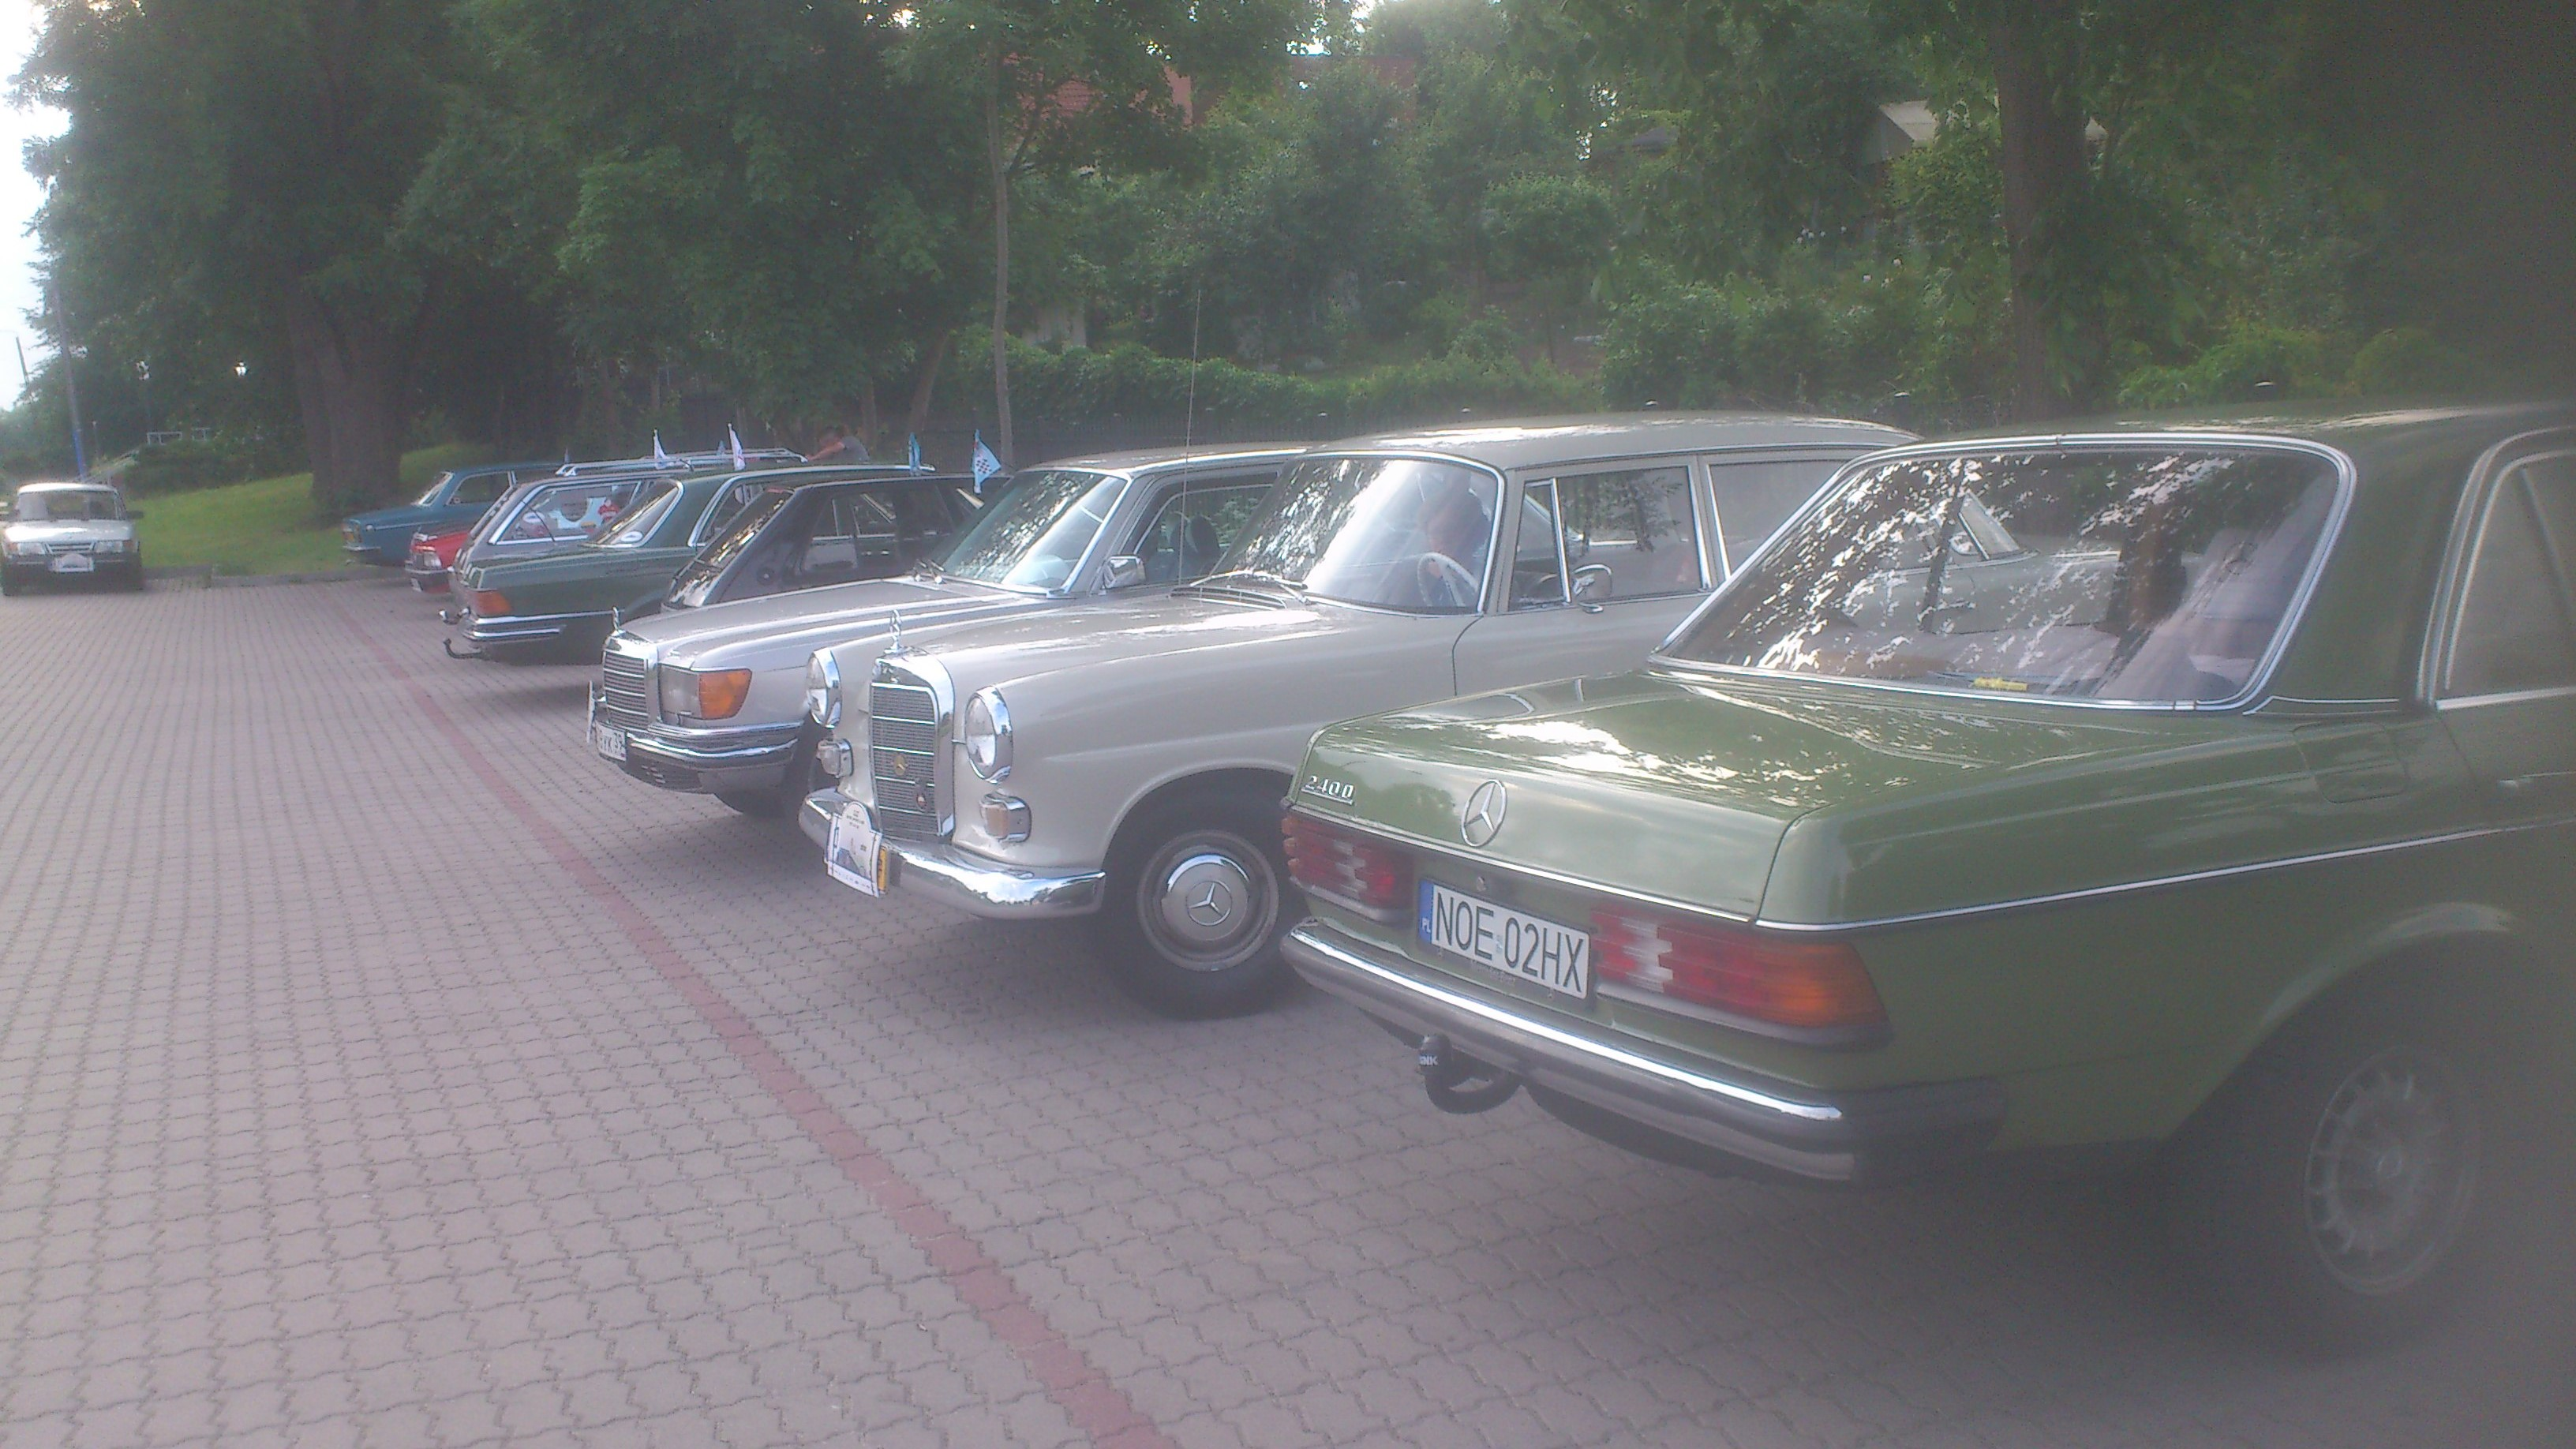 http://124coupe.pl/hosting/images/1497678714.jpg